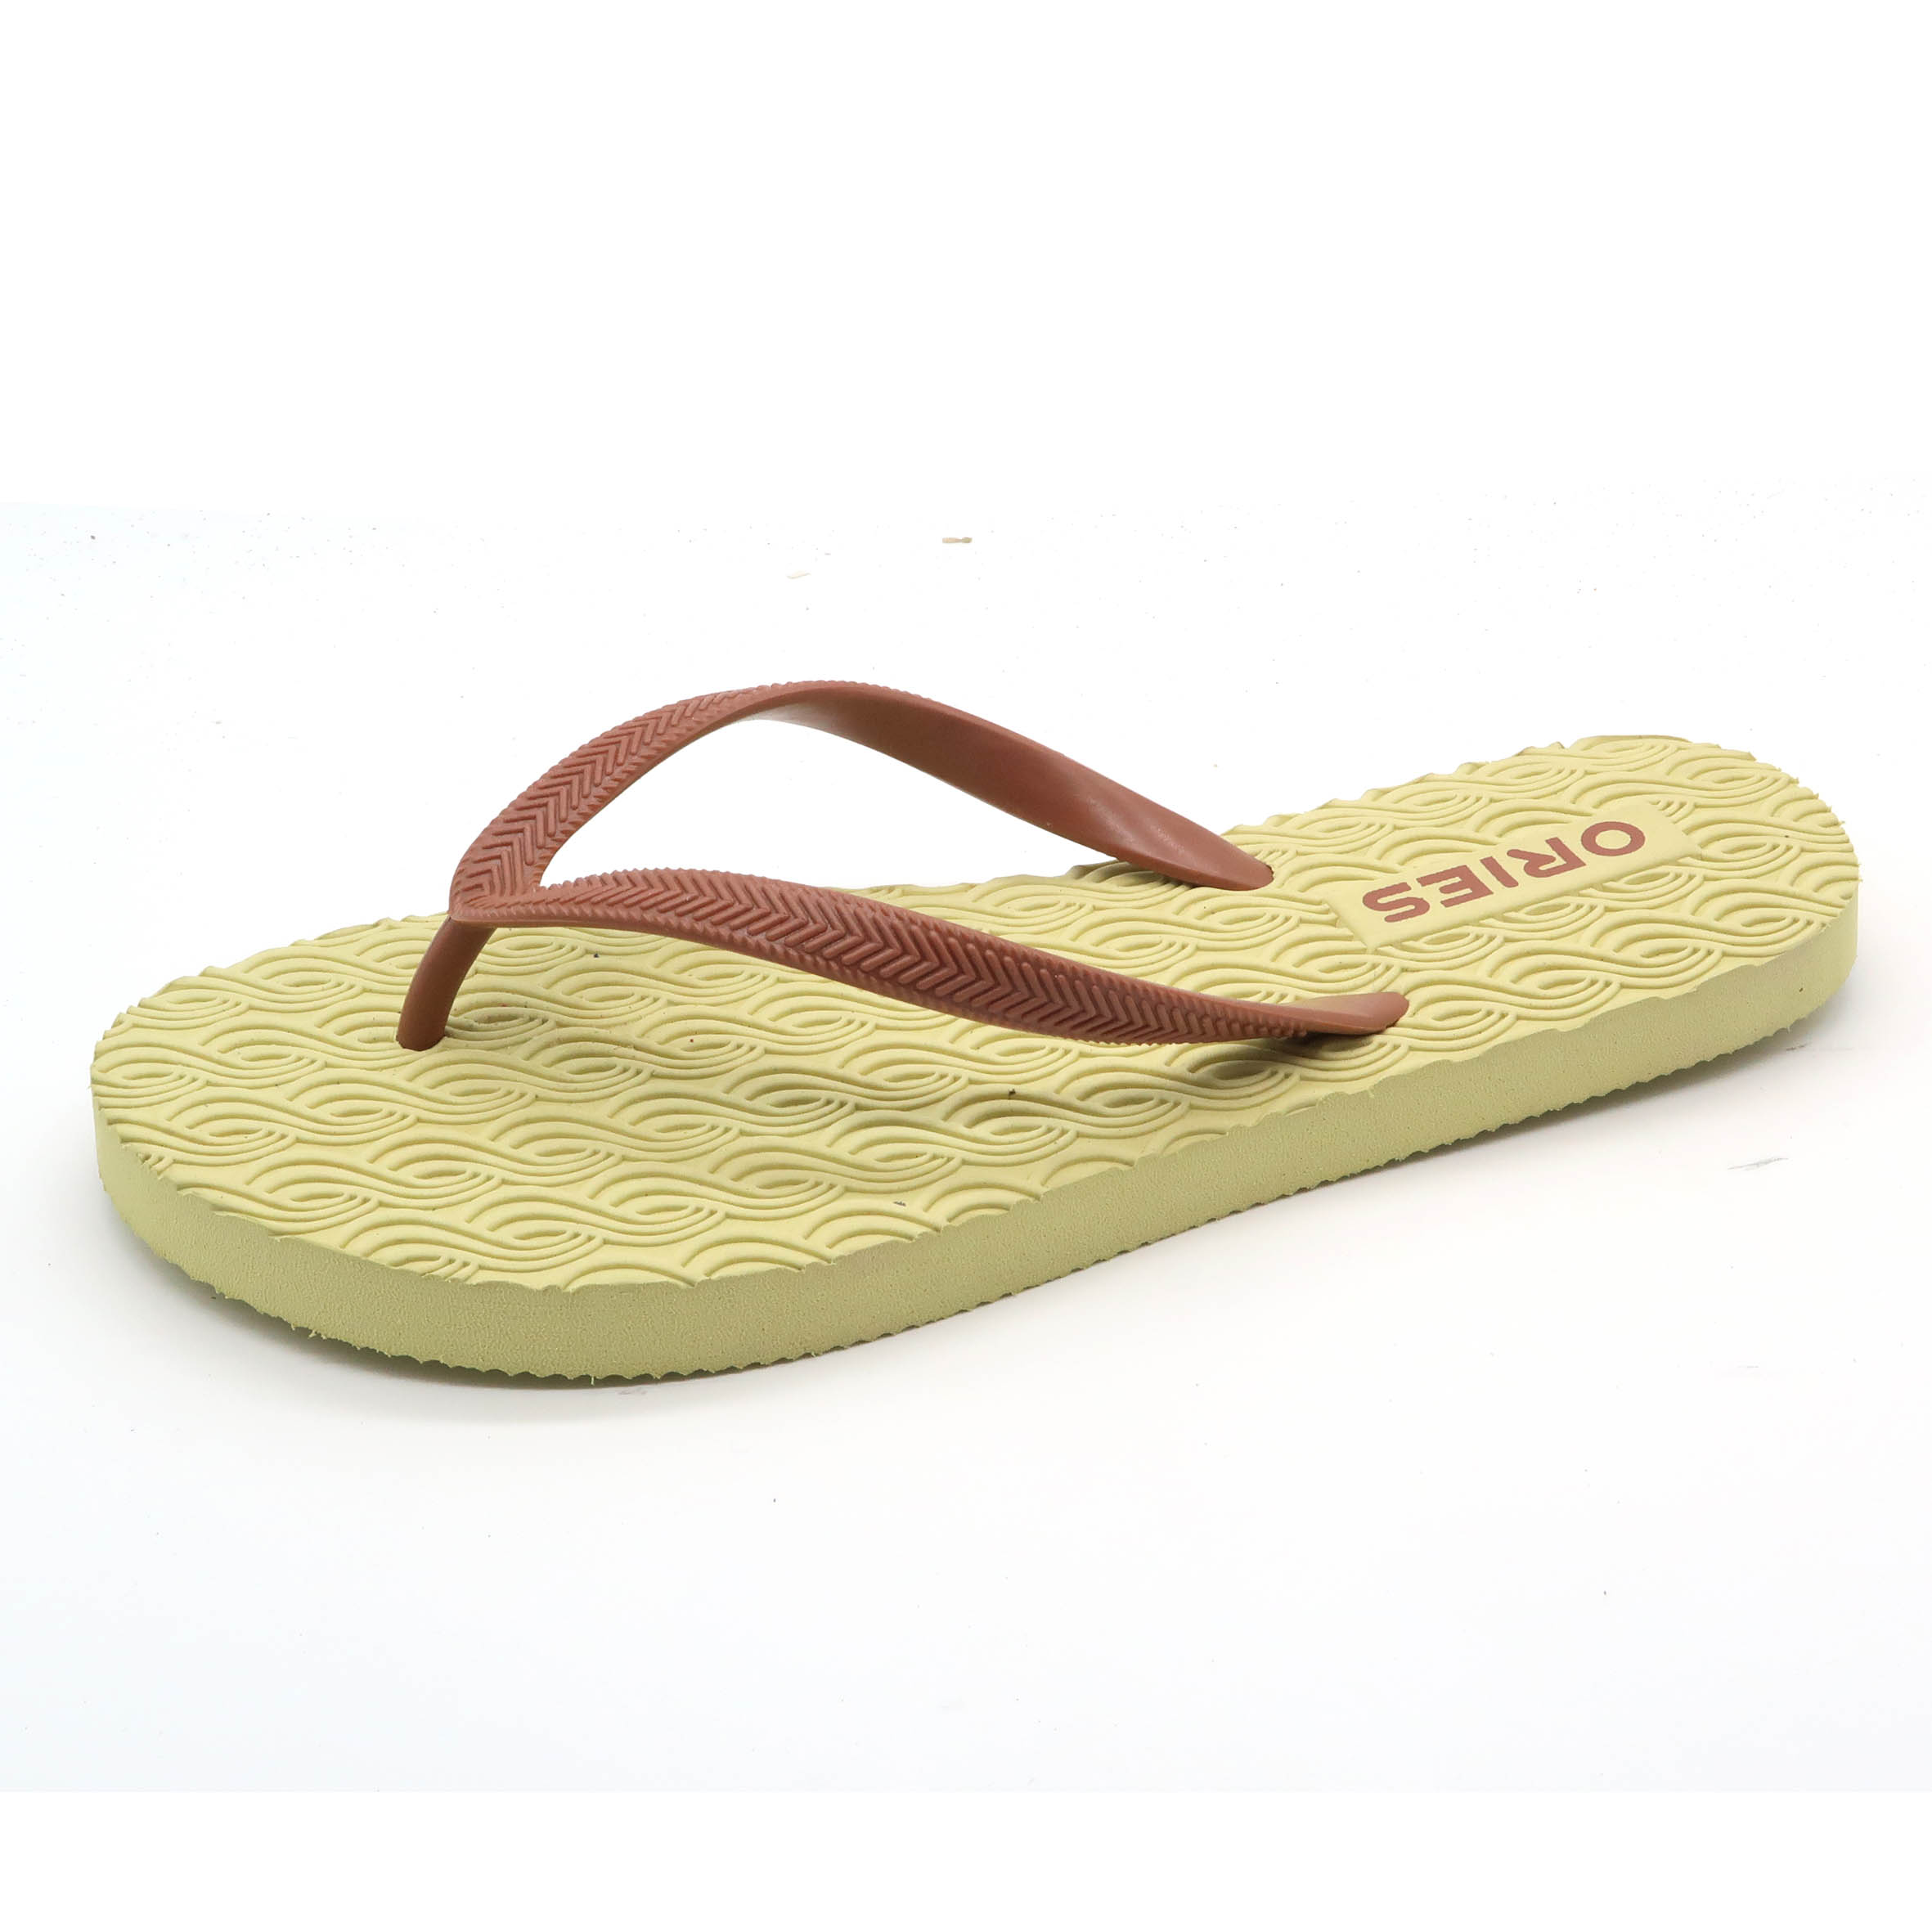 b23cde501 China eva flop sandal wholesale 🇨🇳 - Alibaba